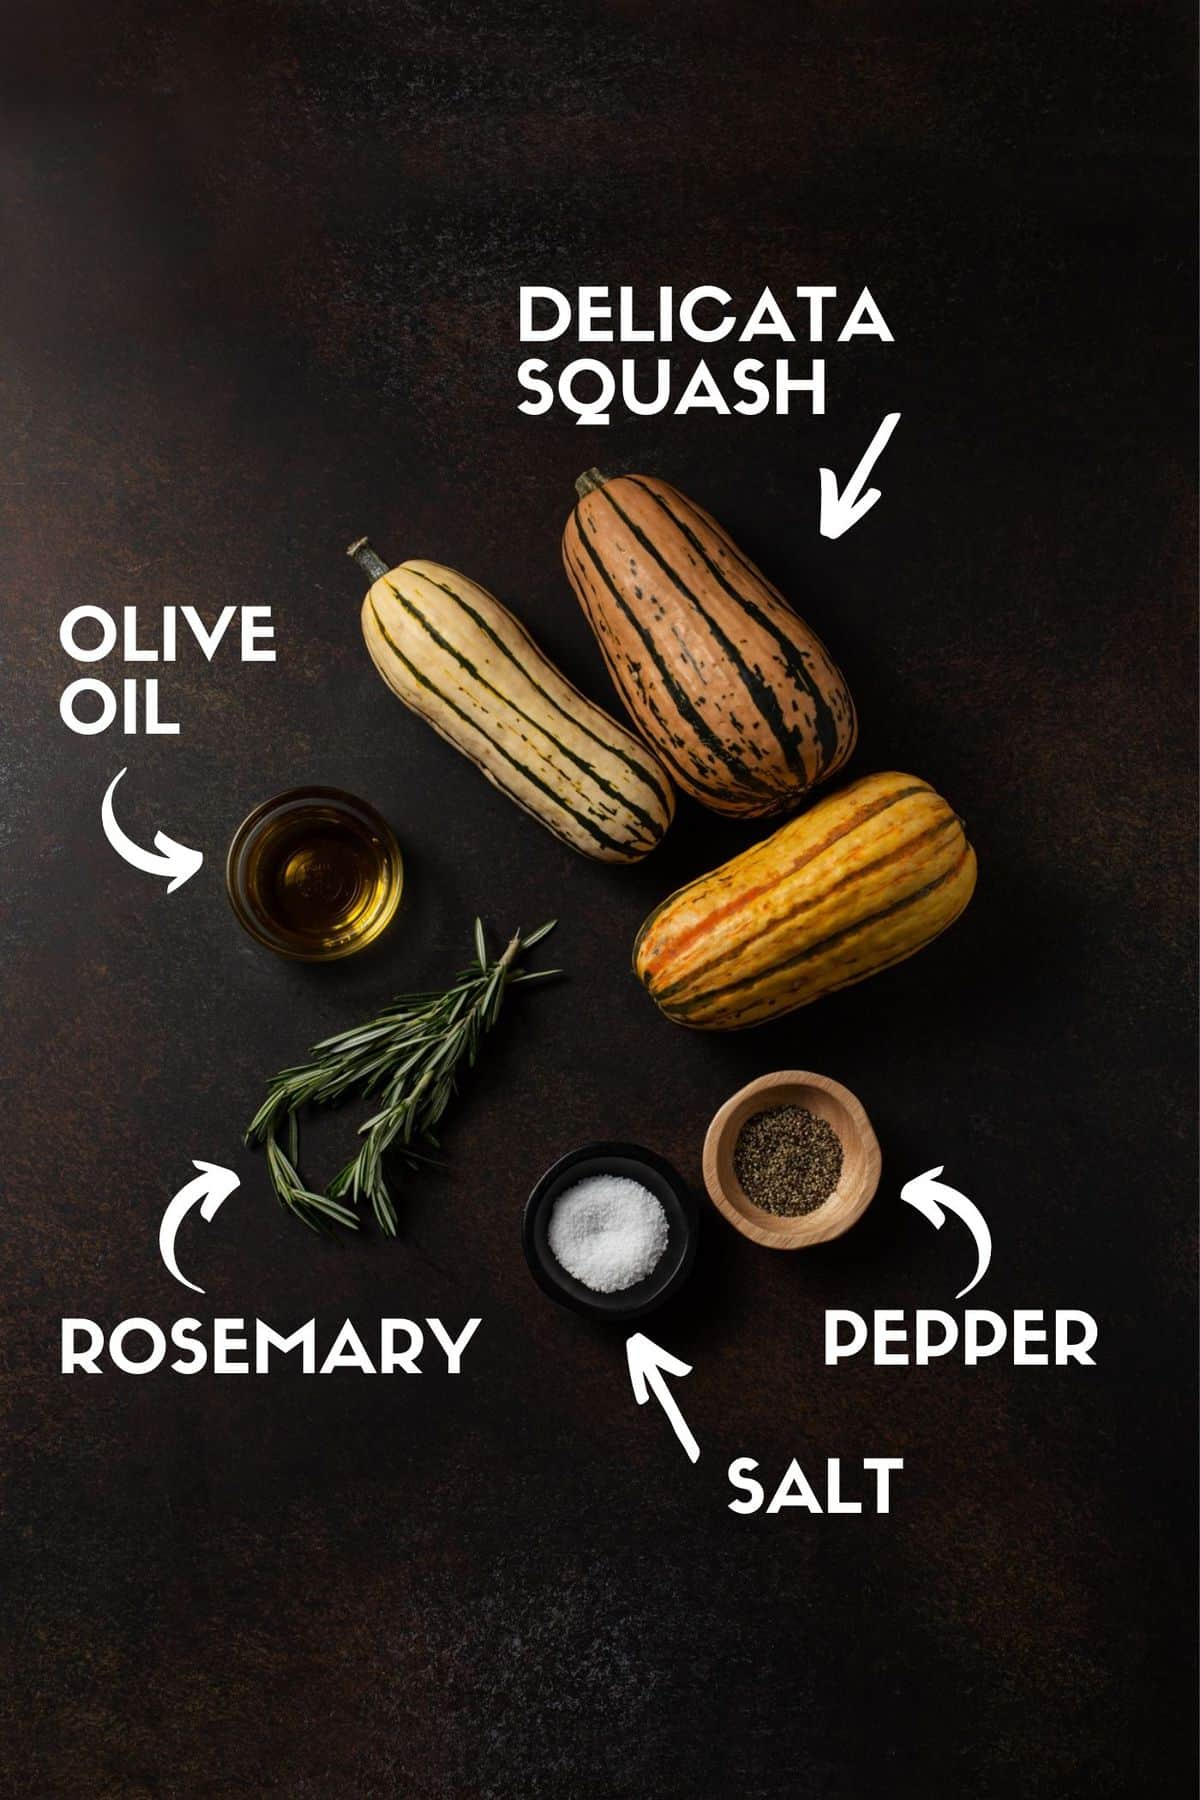 recipe ingredients, including delicata squash, salt, pepper, olive oil and fresh rosemary